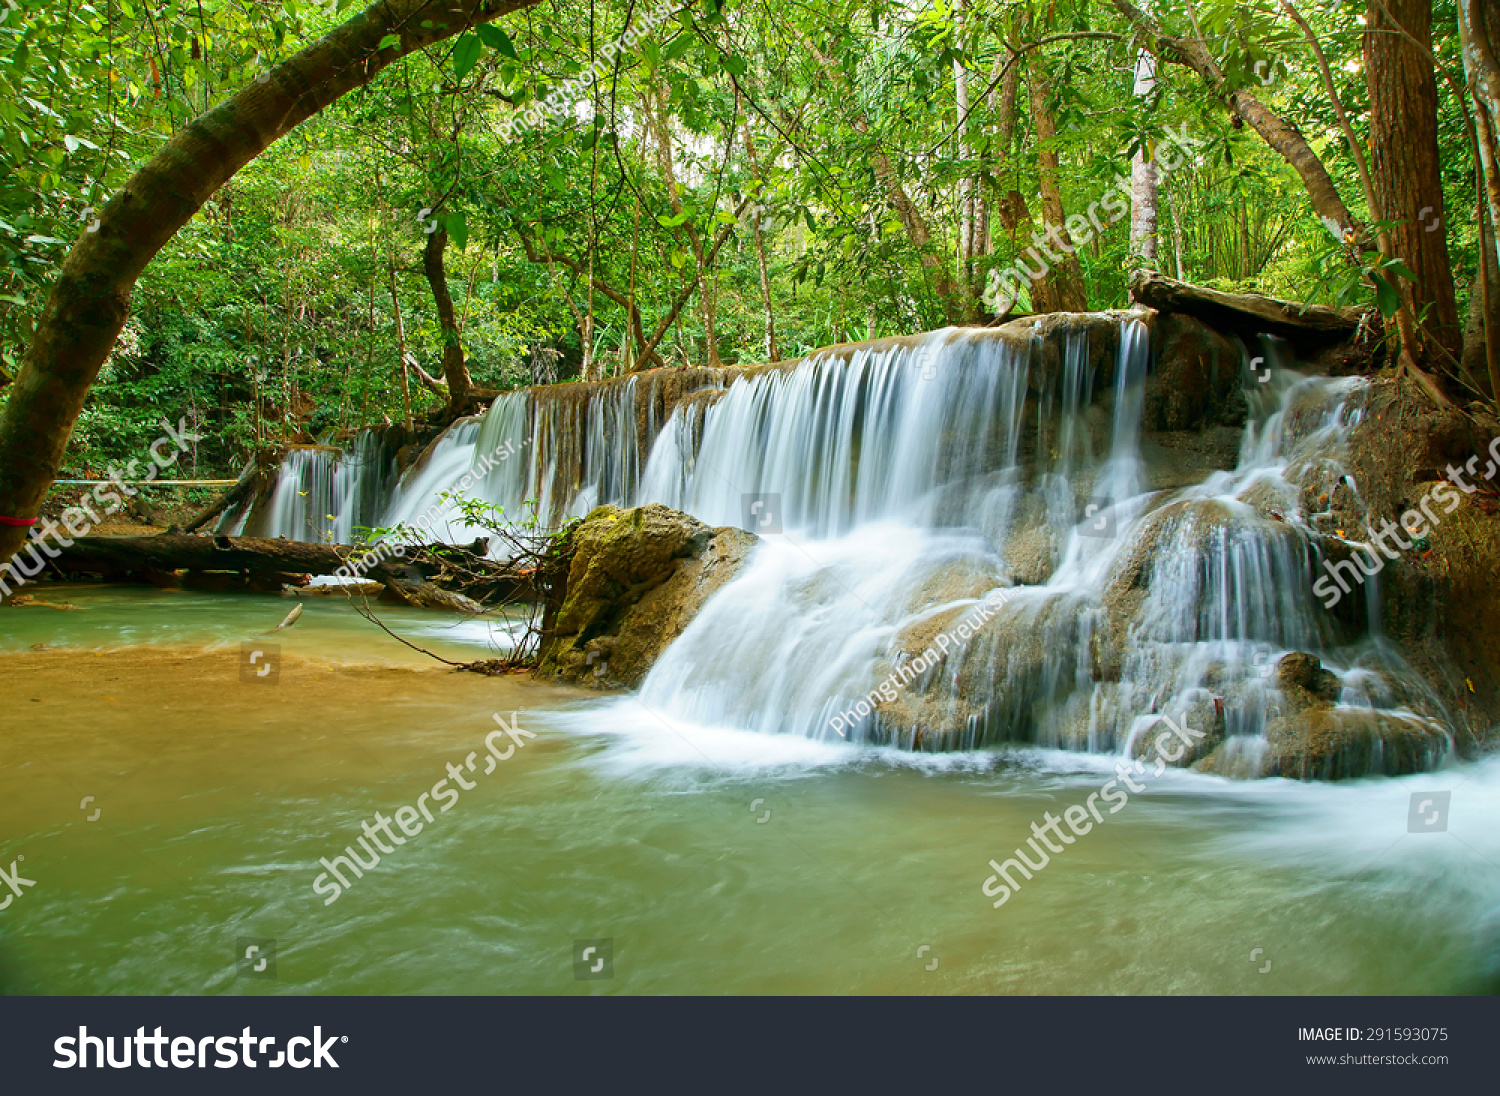 This Is Huai Mae Khamin Waterfall. It Is Major Attraction ...